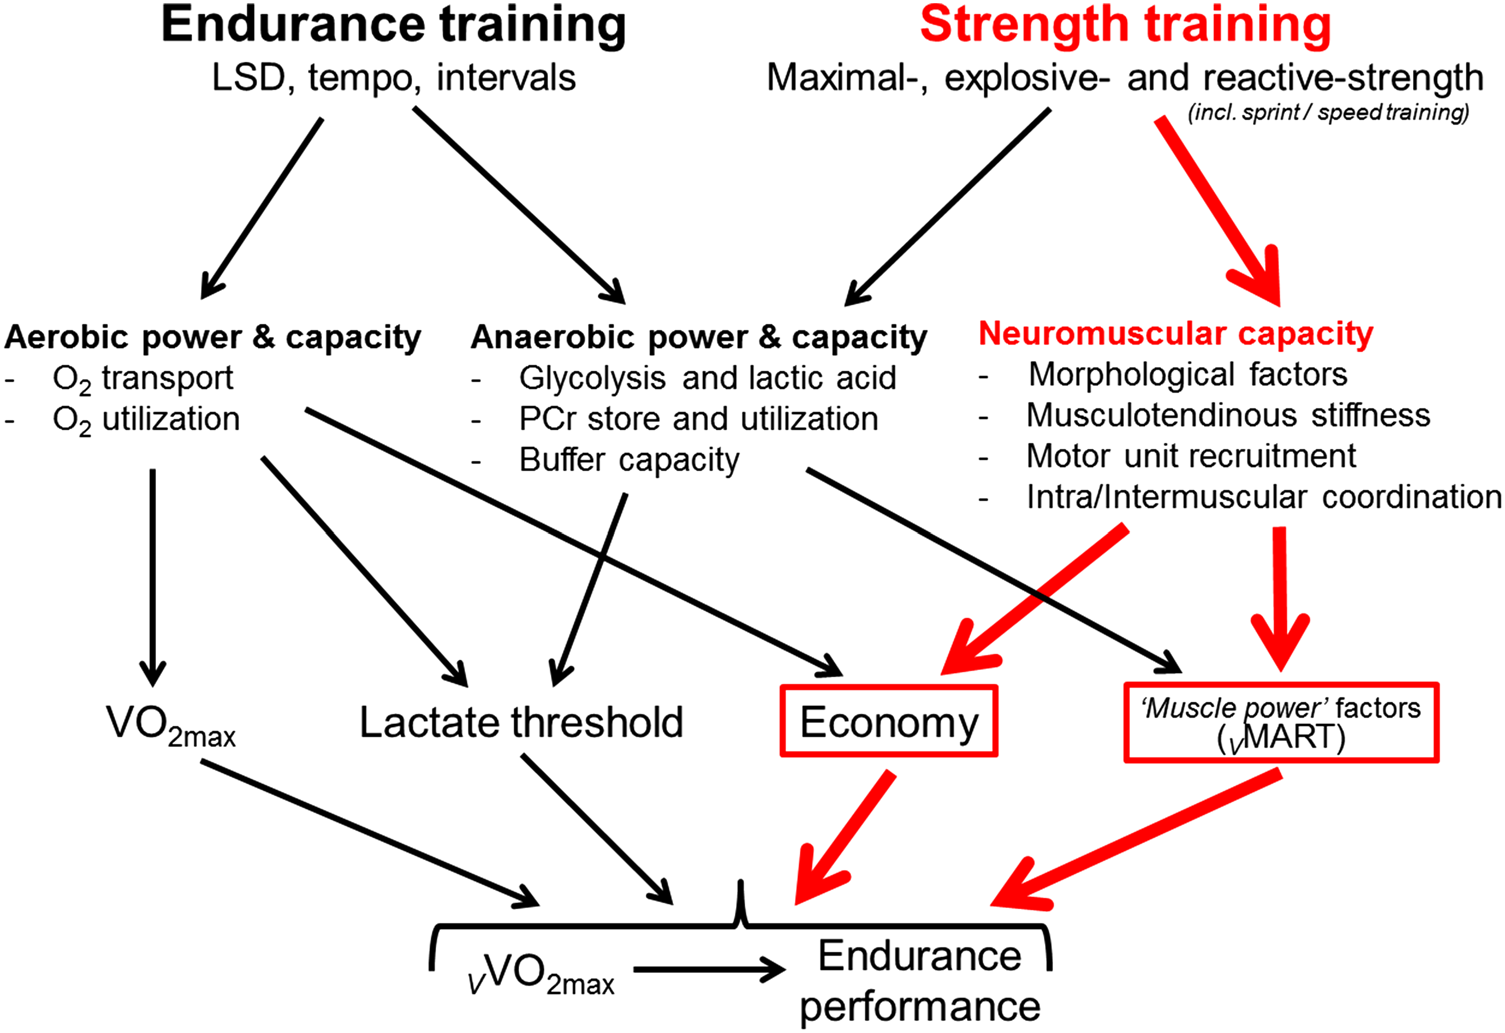 Image taken from: Beattie K, Kenny IC, Lyons M, Carson BP (2014) The effect of strength training on performance in endurance athletes.  Sports Med  44: 845-865.